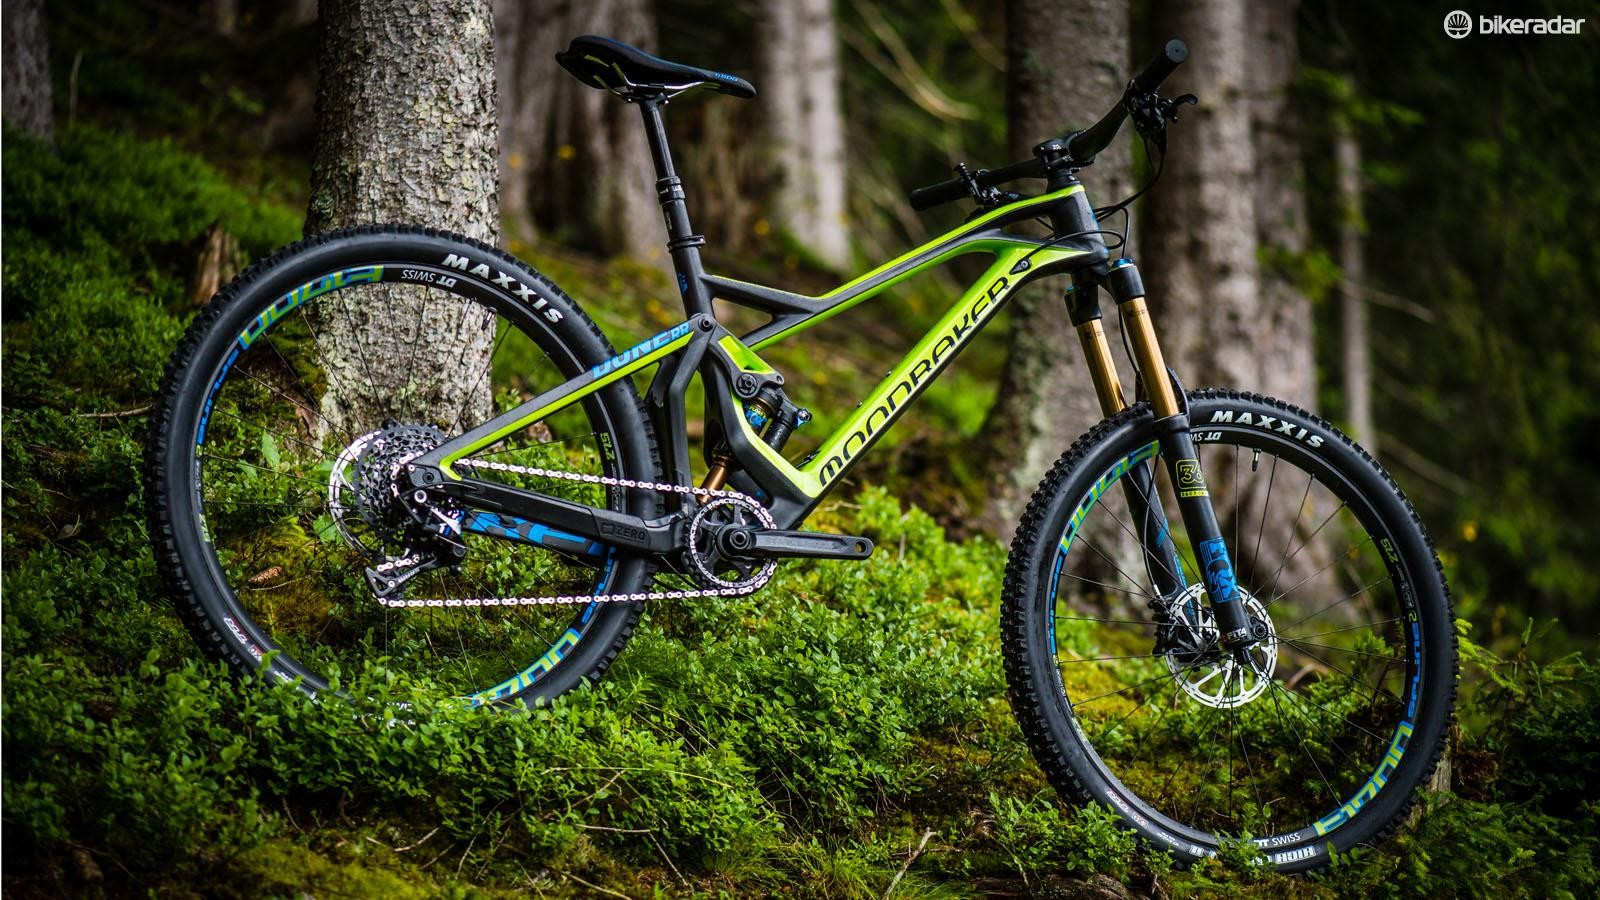 The second from top RR bike comes in at £5599 and 12.74kg, with less travel and adjustability than the XR thanks to  a 160mm Fox Float 36 FIT4 and Float X rear shock